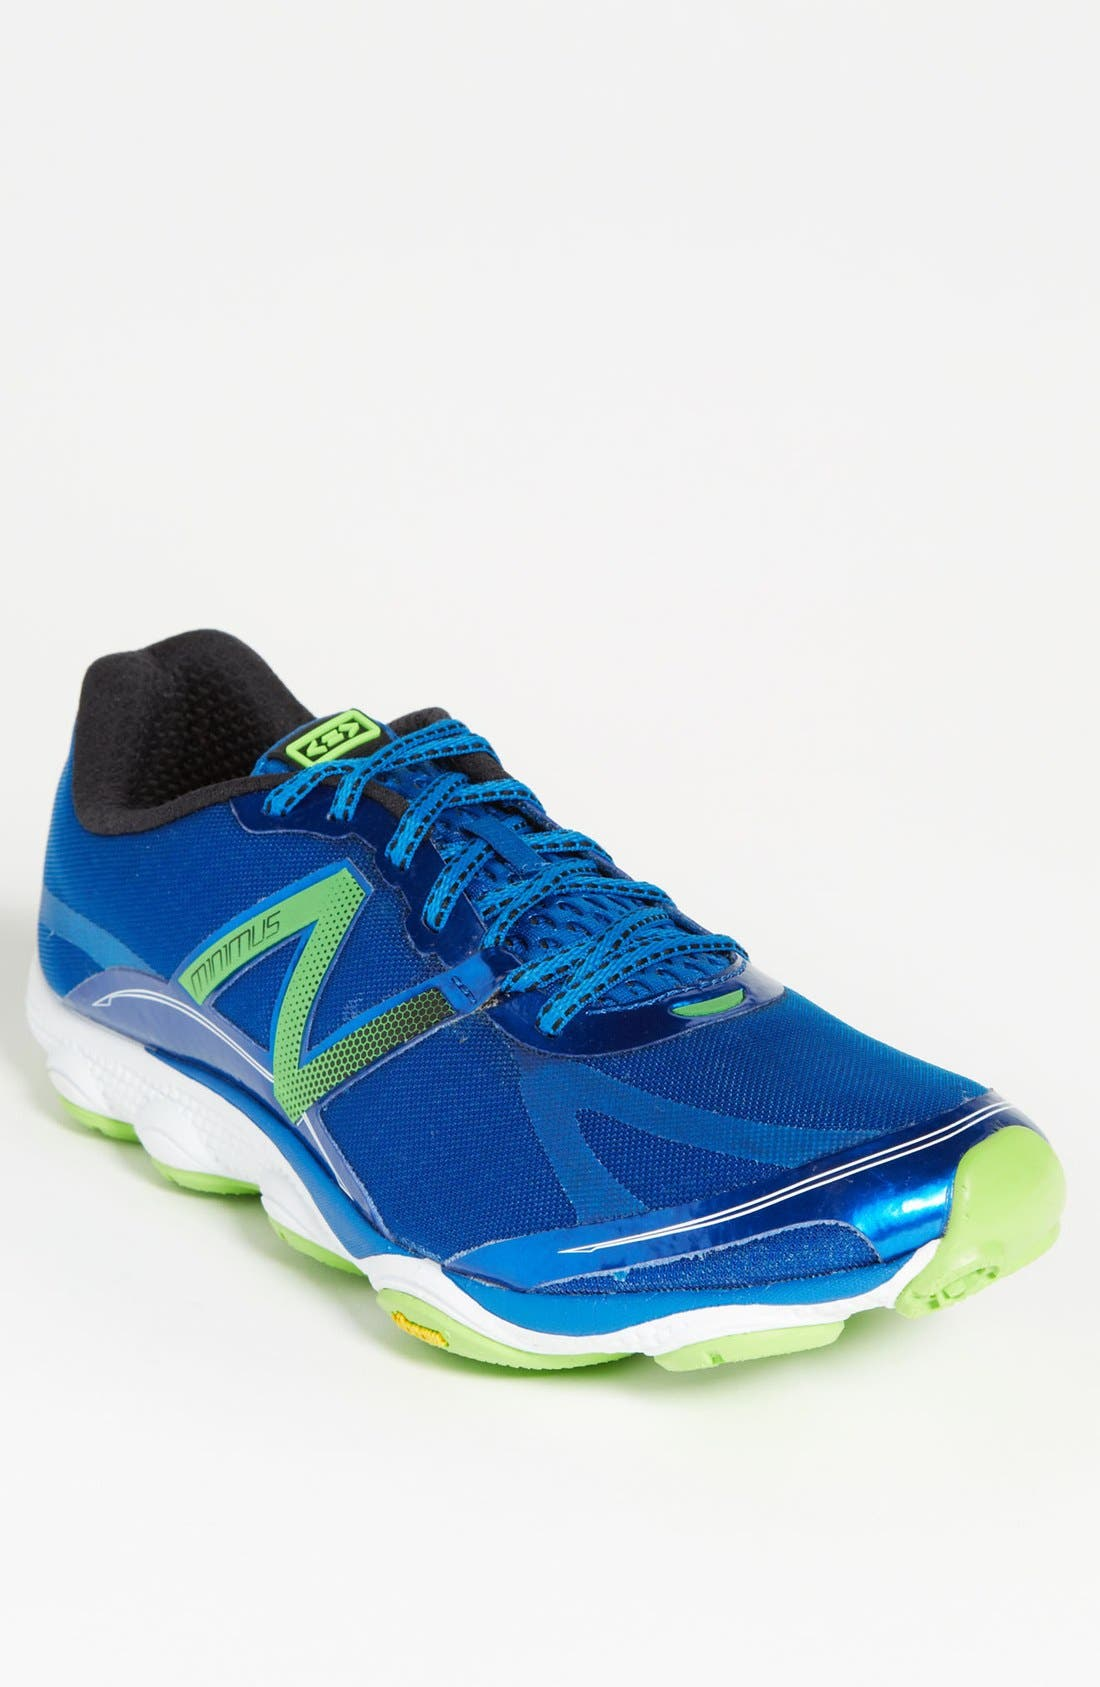 Main Image - New Balance '1010 Minimal' Trail Running Shoe (Men)